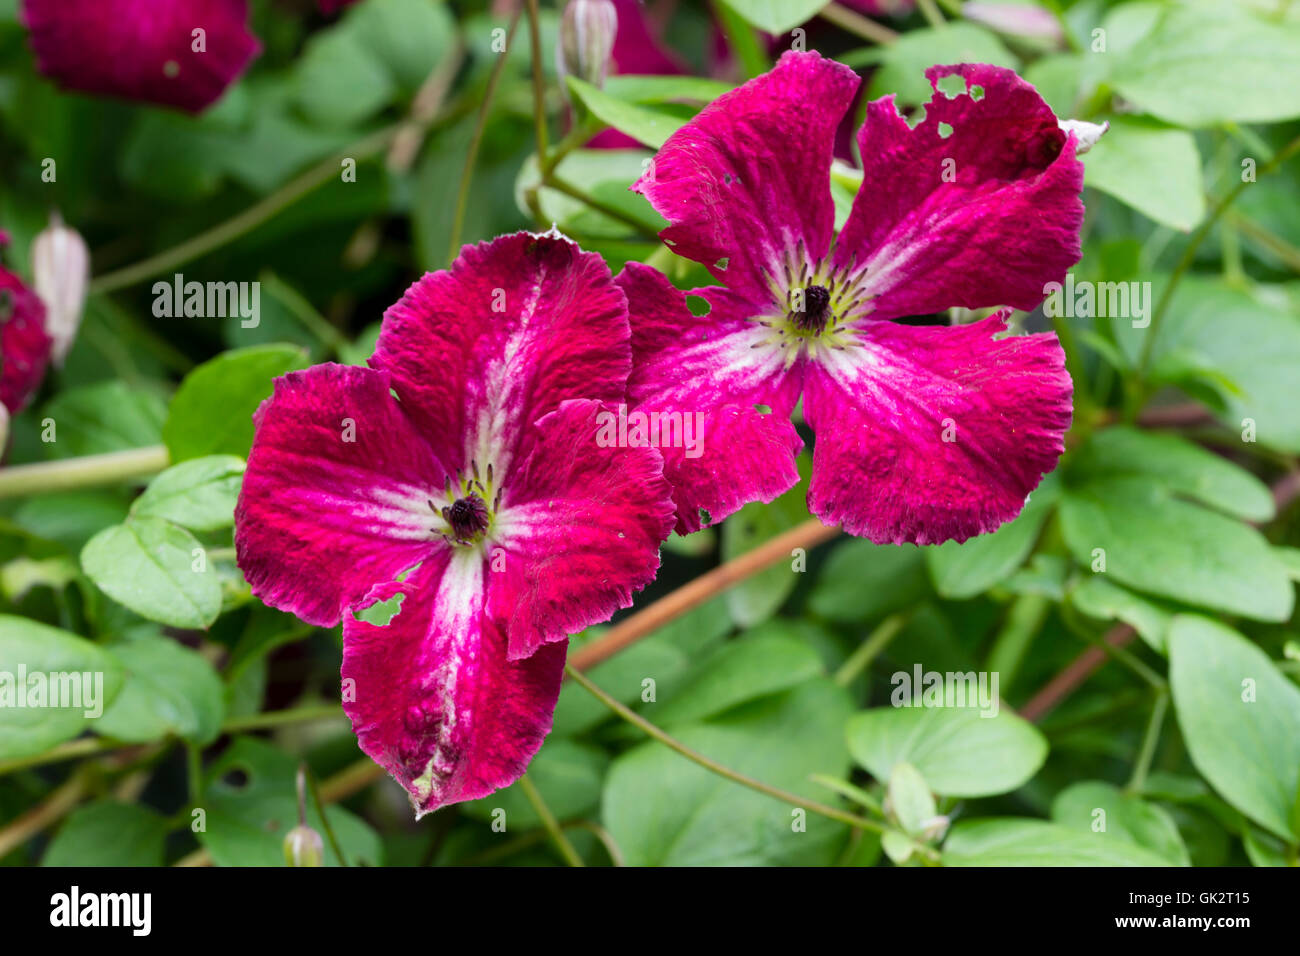 Red flowers of the hardy climbing viticella type Clematis 'Abundance' - Stock Image